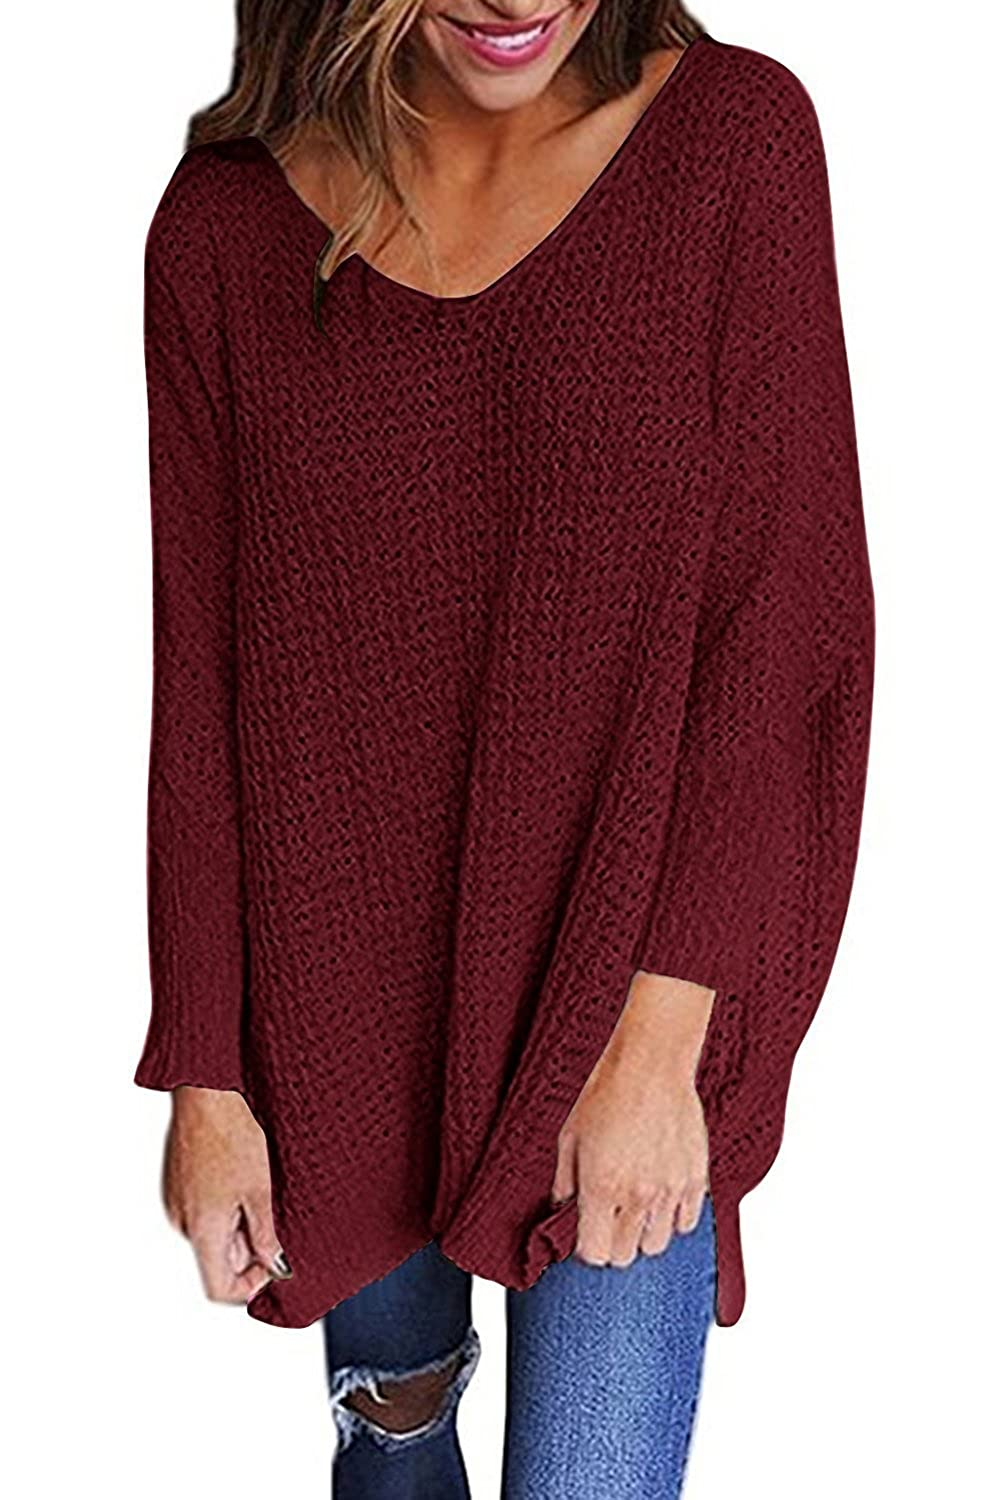 Mafulus Womens Oversized Sweaters Casual V Neck Long Sleeve Loose Knit  Pullover Tops at Amazon Women s Clothing store  f38109653